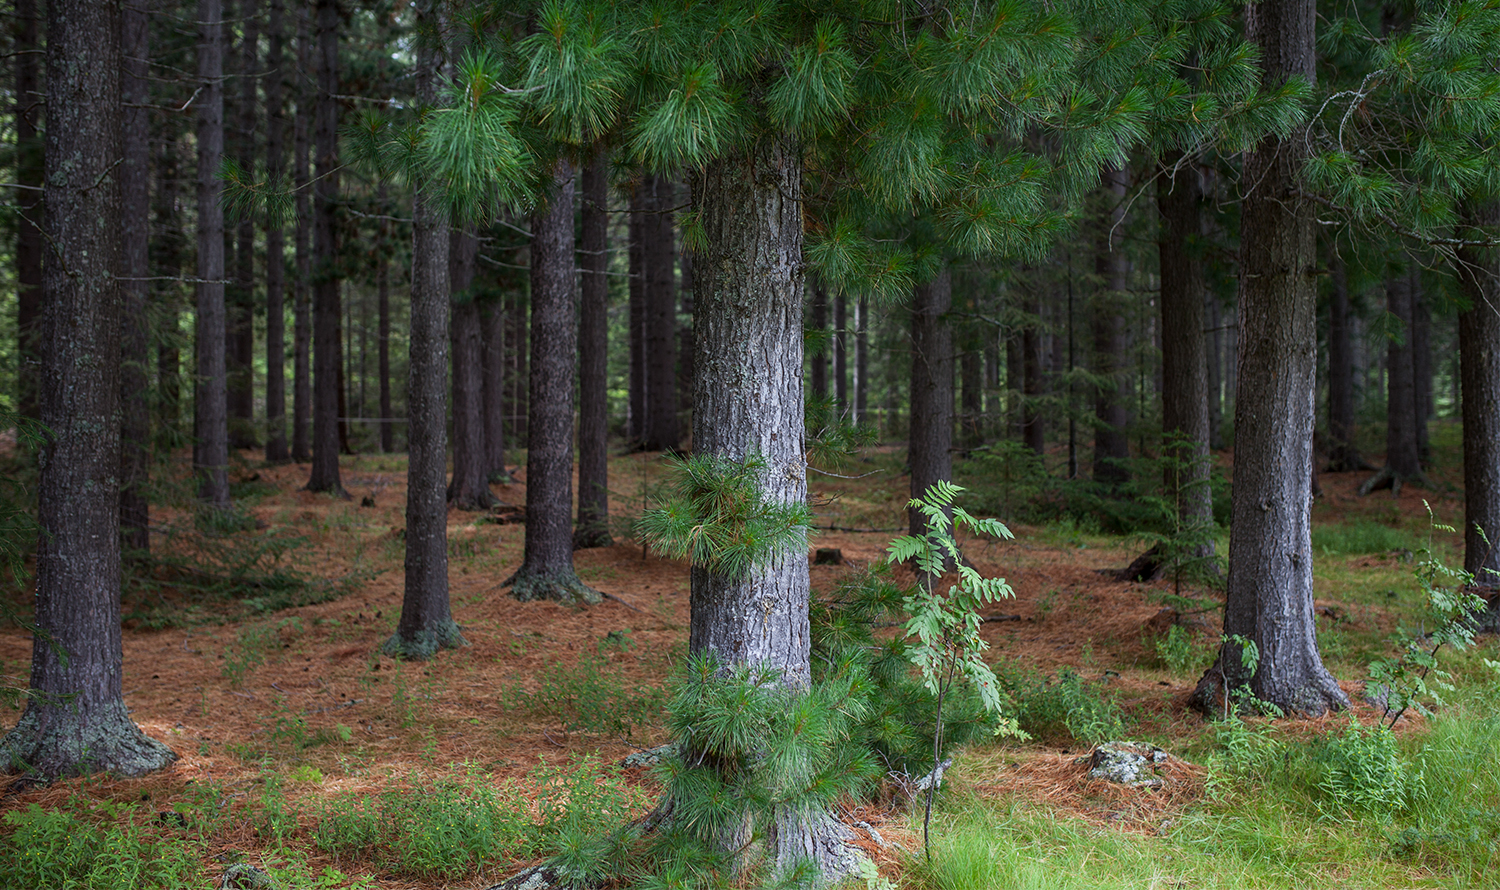 Pine forest - nearby